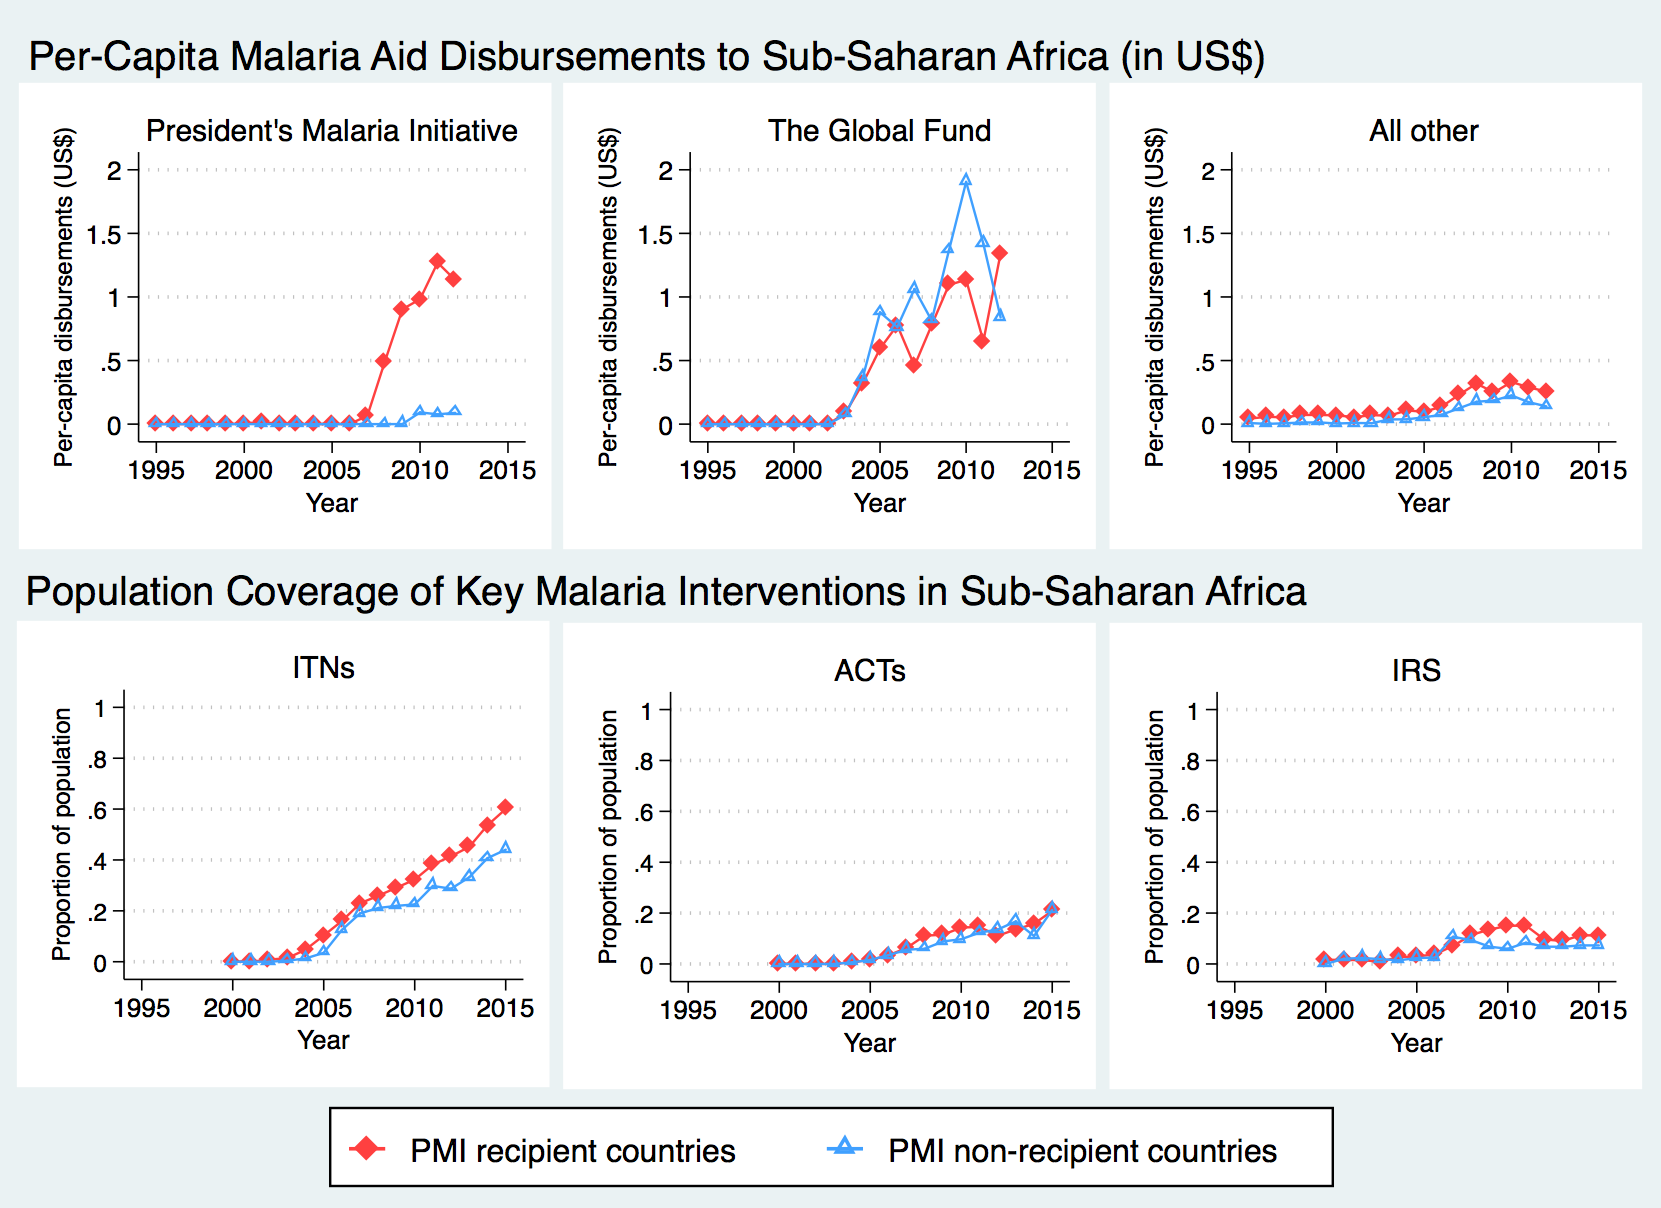 Time trends in development assistance for malaria and coverage of malaria interventions in sub-Saharan Africa.